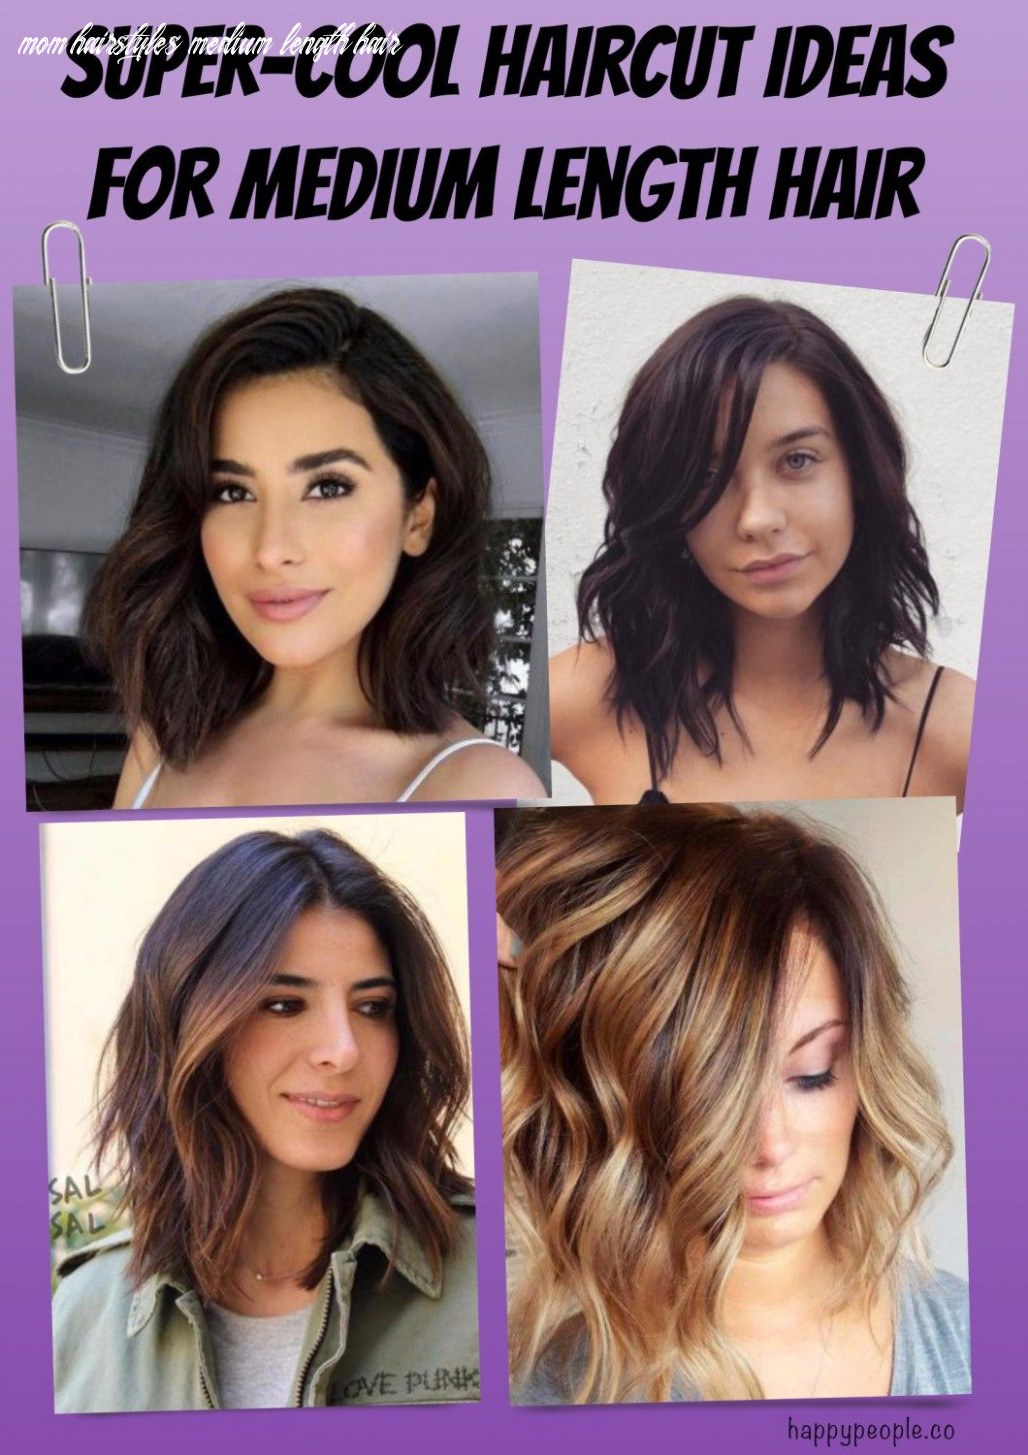 Super cool haircut ideas for medium length hair (with images